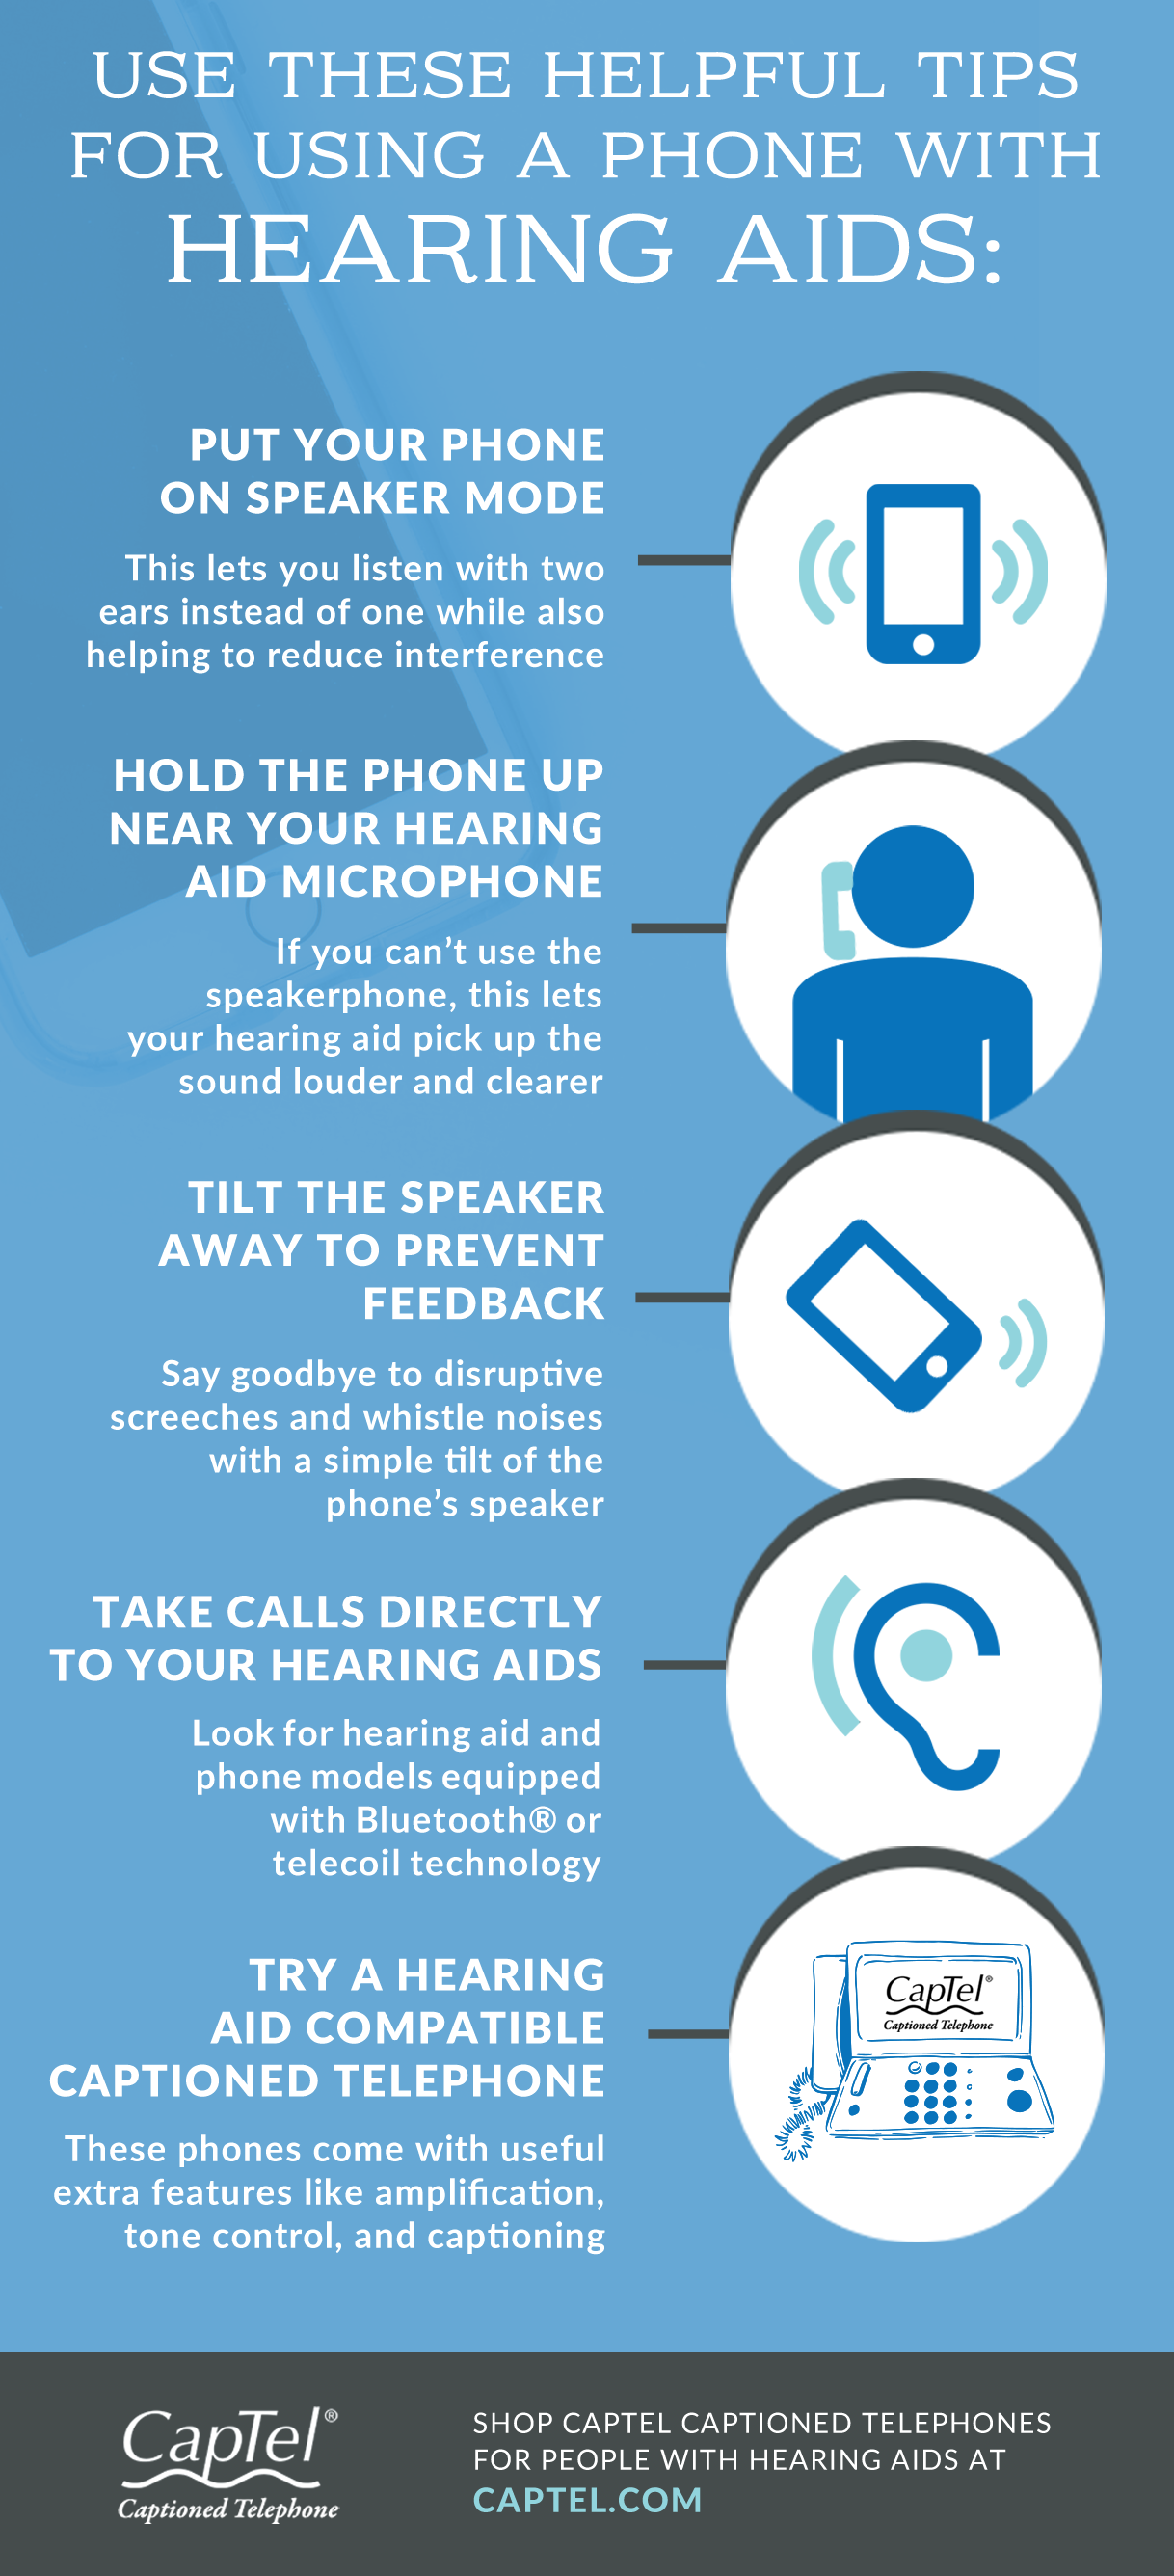 One of the tips for using a phone with hearing aids is to put the phone on speaker mode.